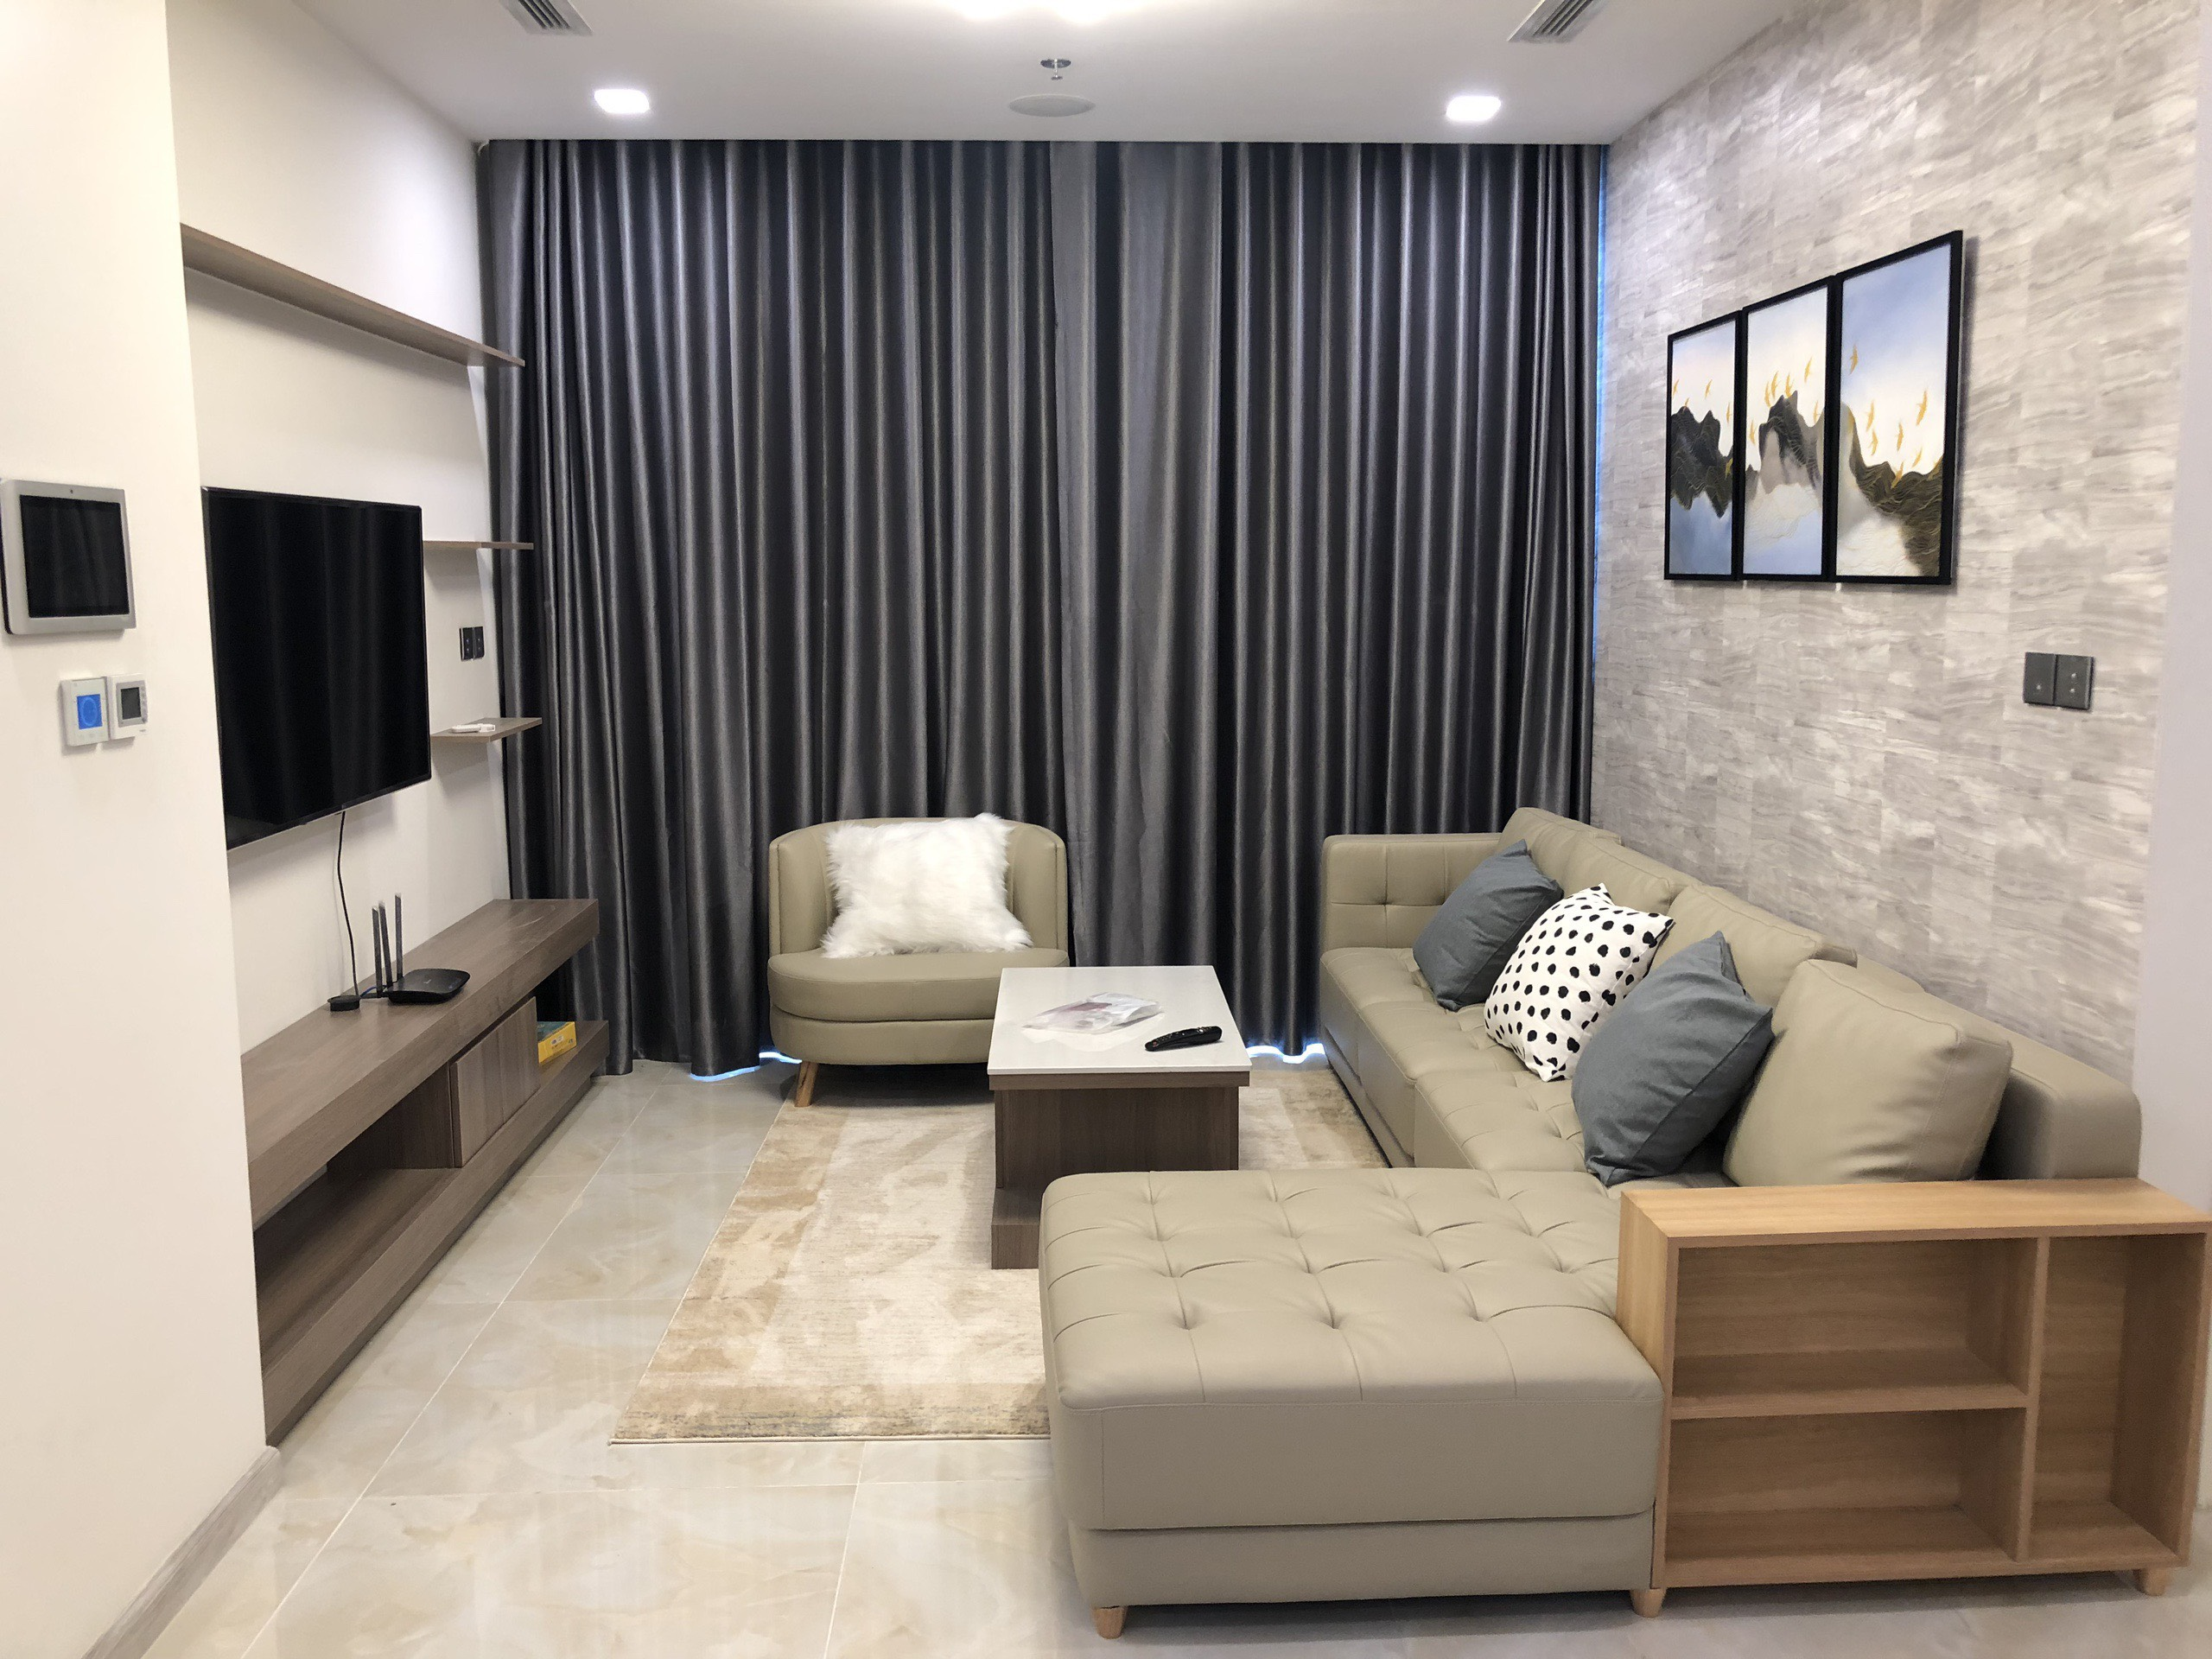 vinhomes golden river apartment for rent in district 1 hcmc D1022483(20)